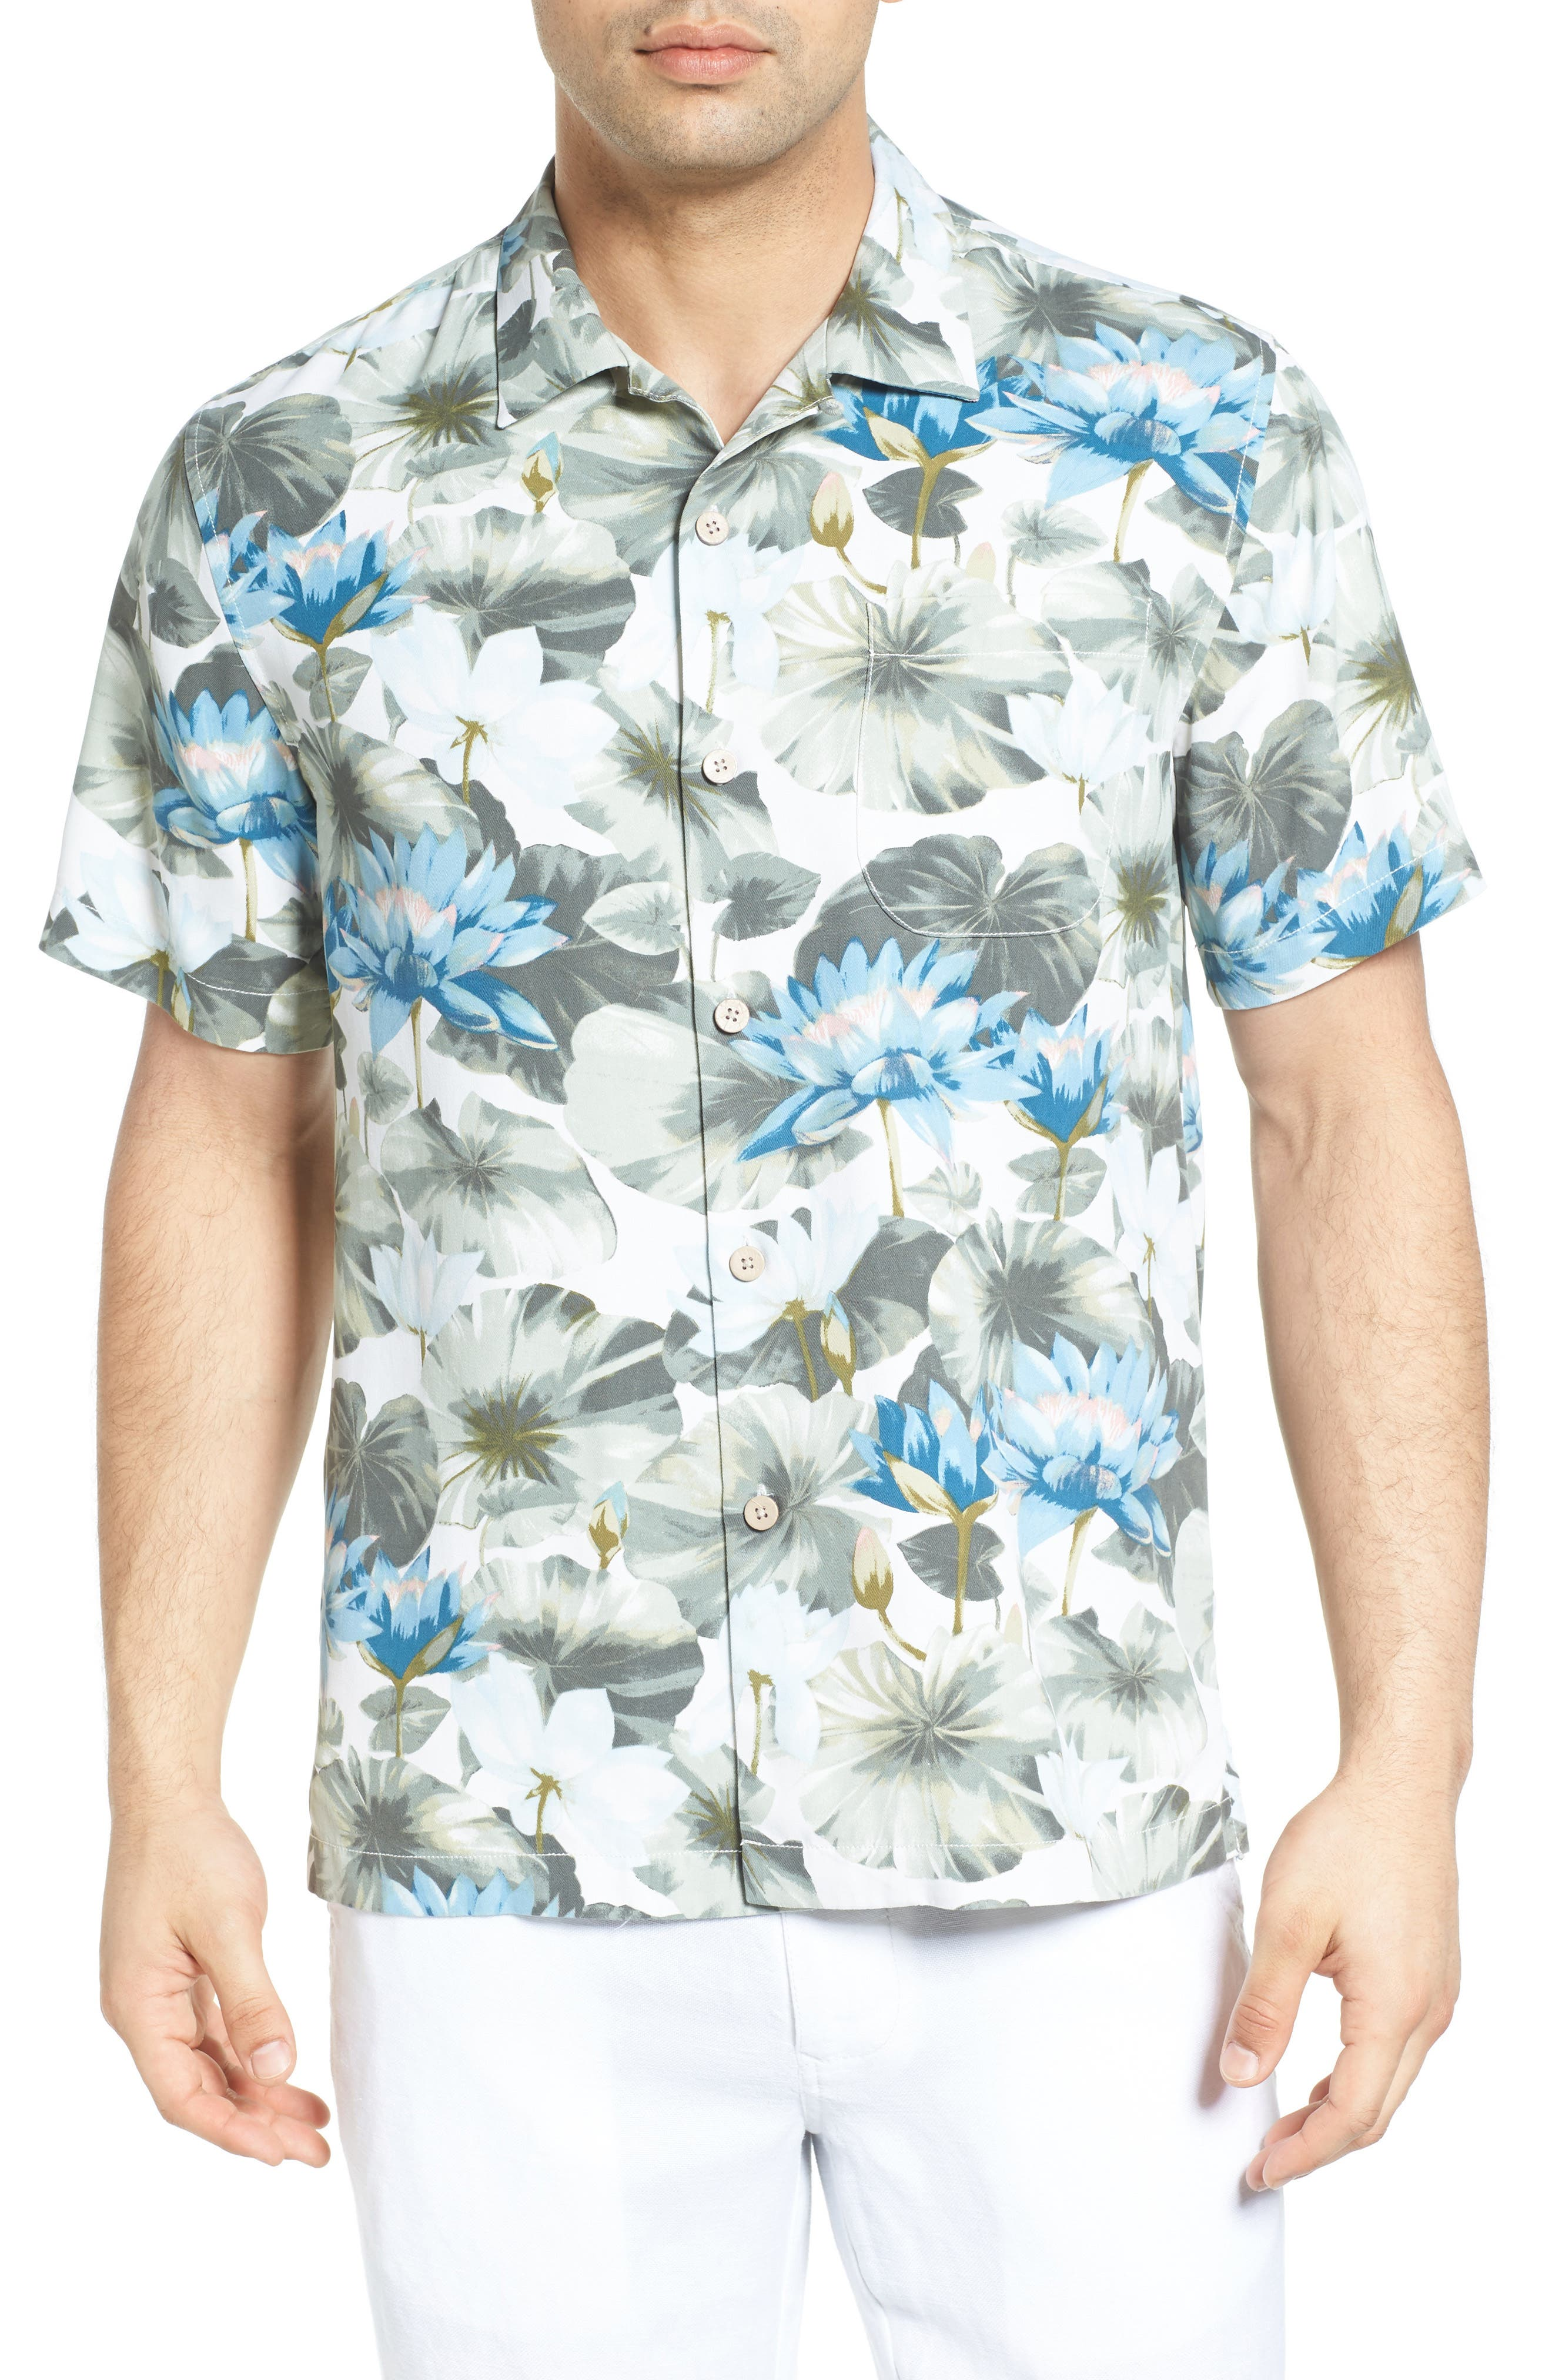 Garden of Hope and Courage Silk Camp Shirt,                             Main thumbnail 1, color,                             100